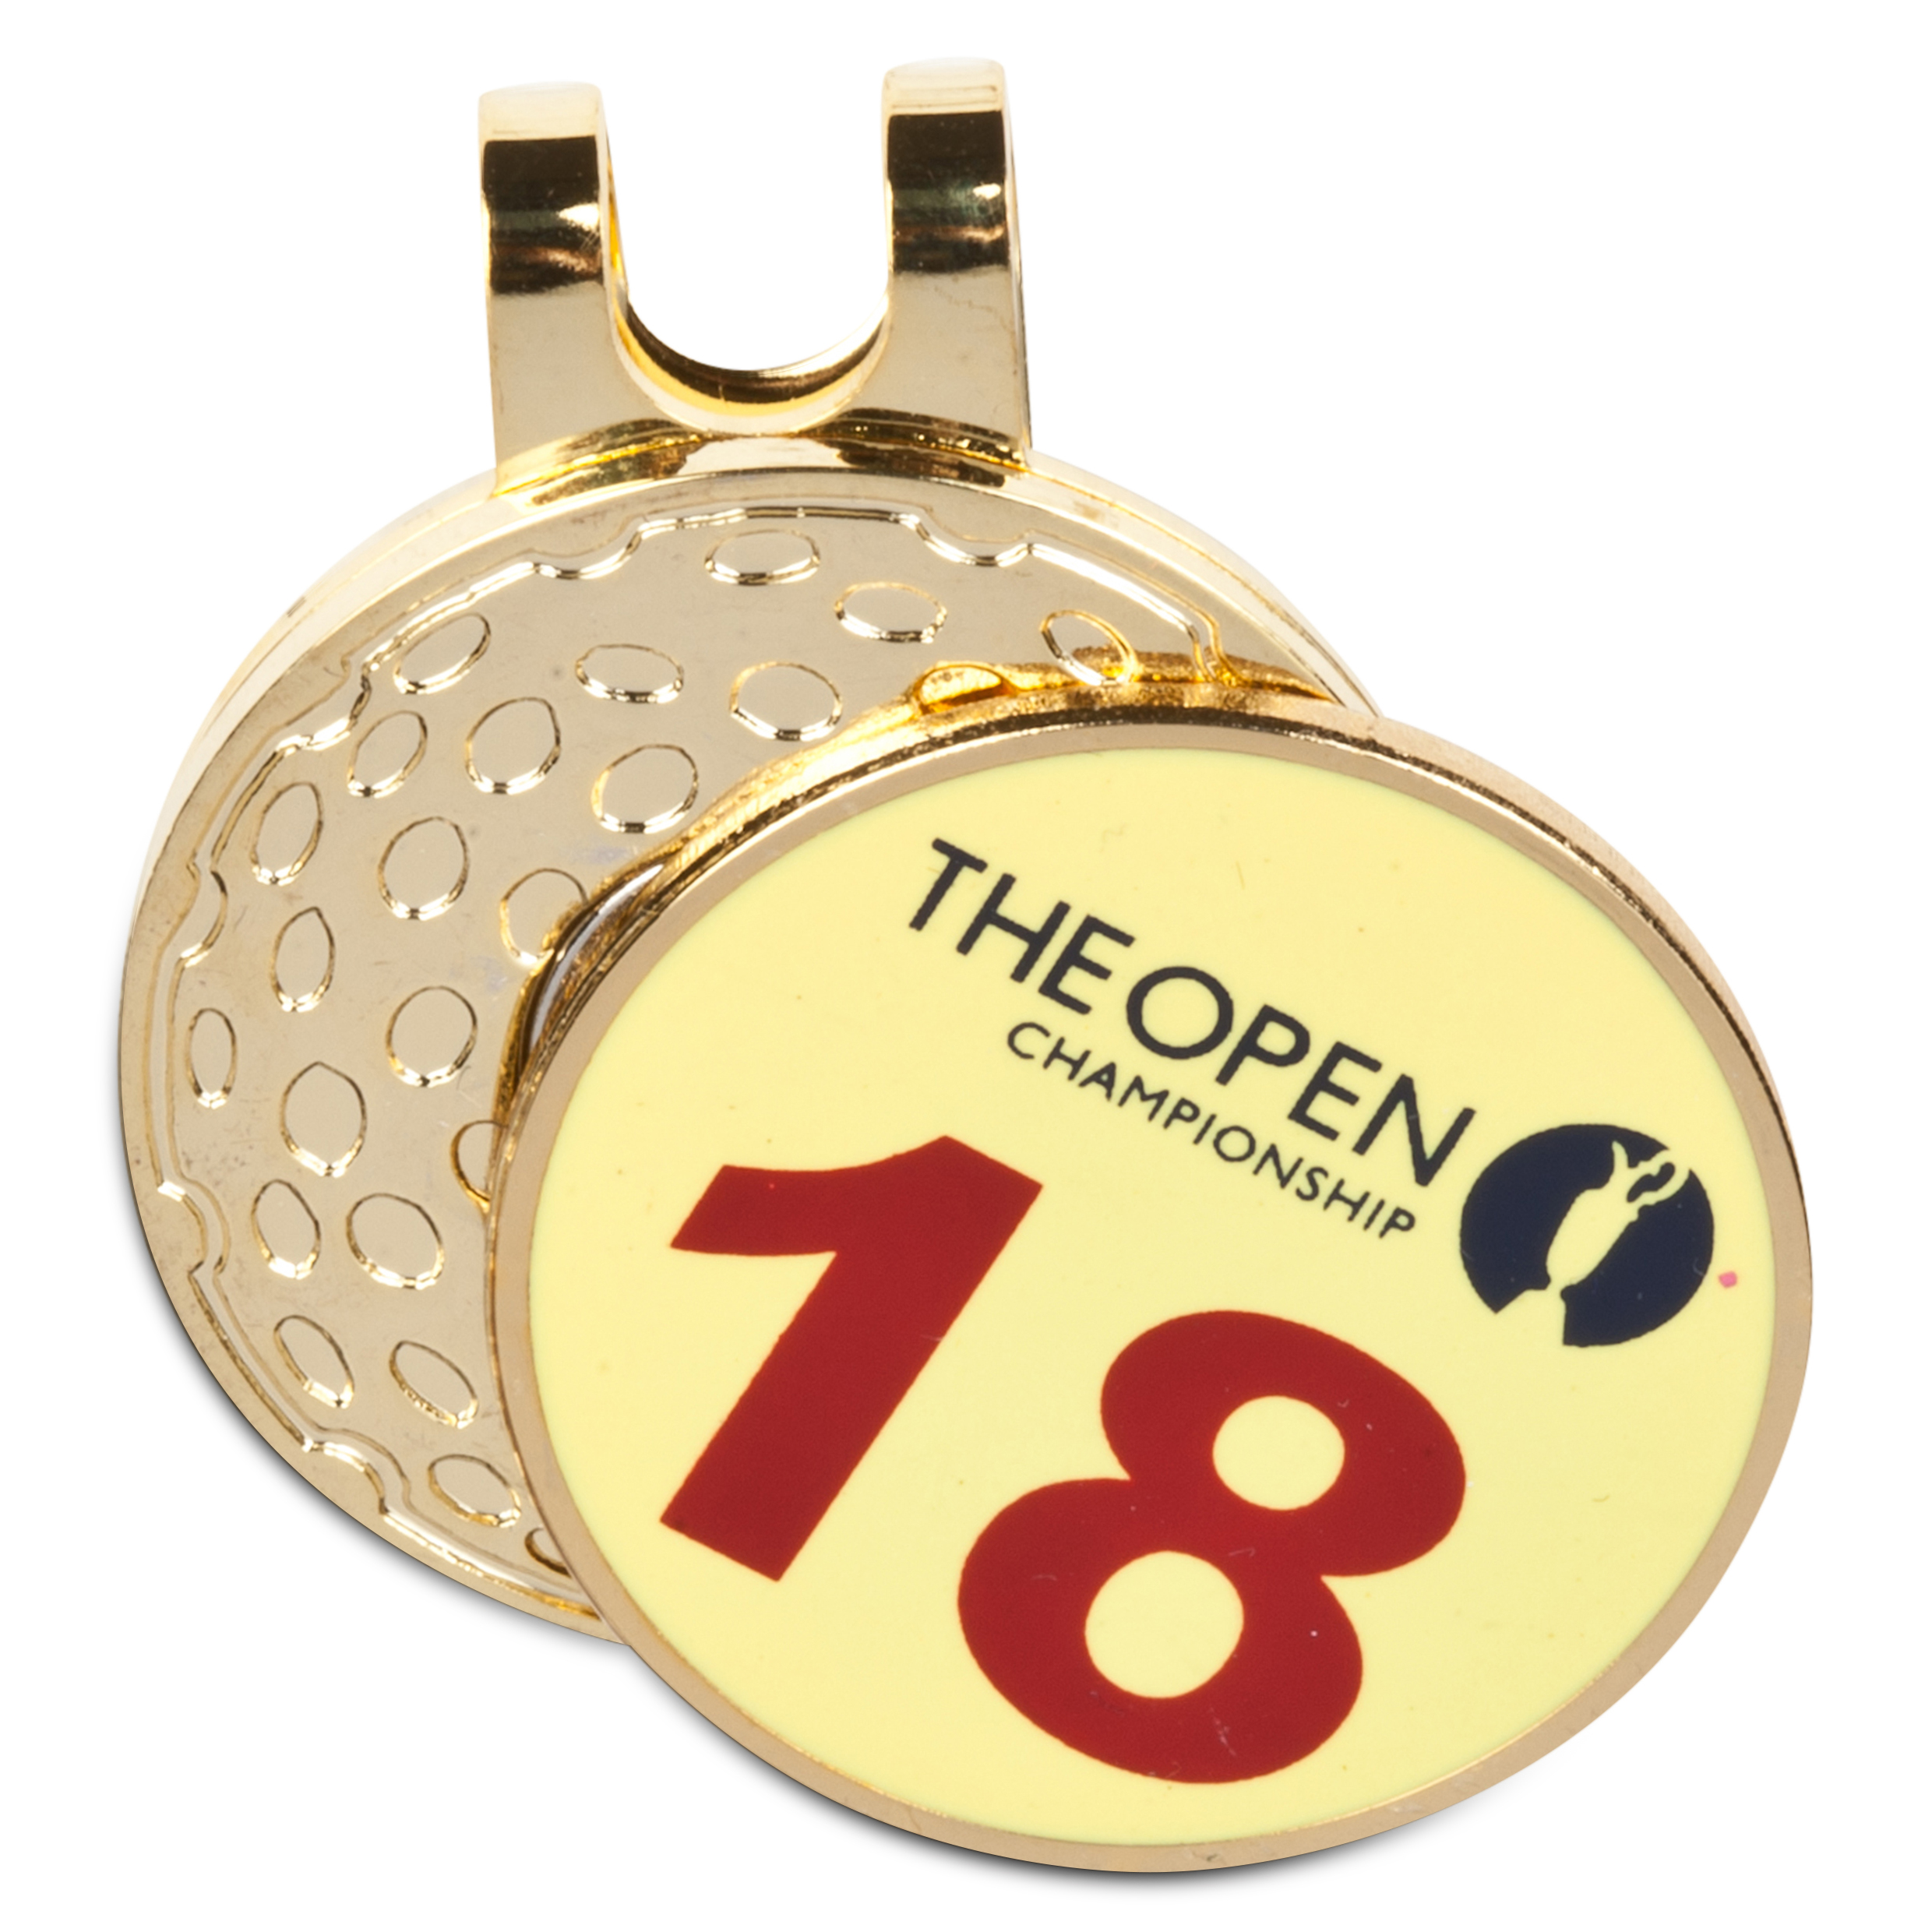 The Open Championship Royal Liverpool 2014 Cap Clip